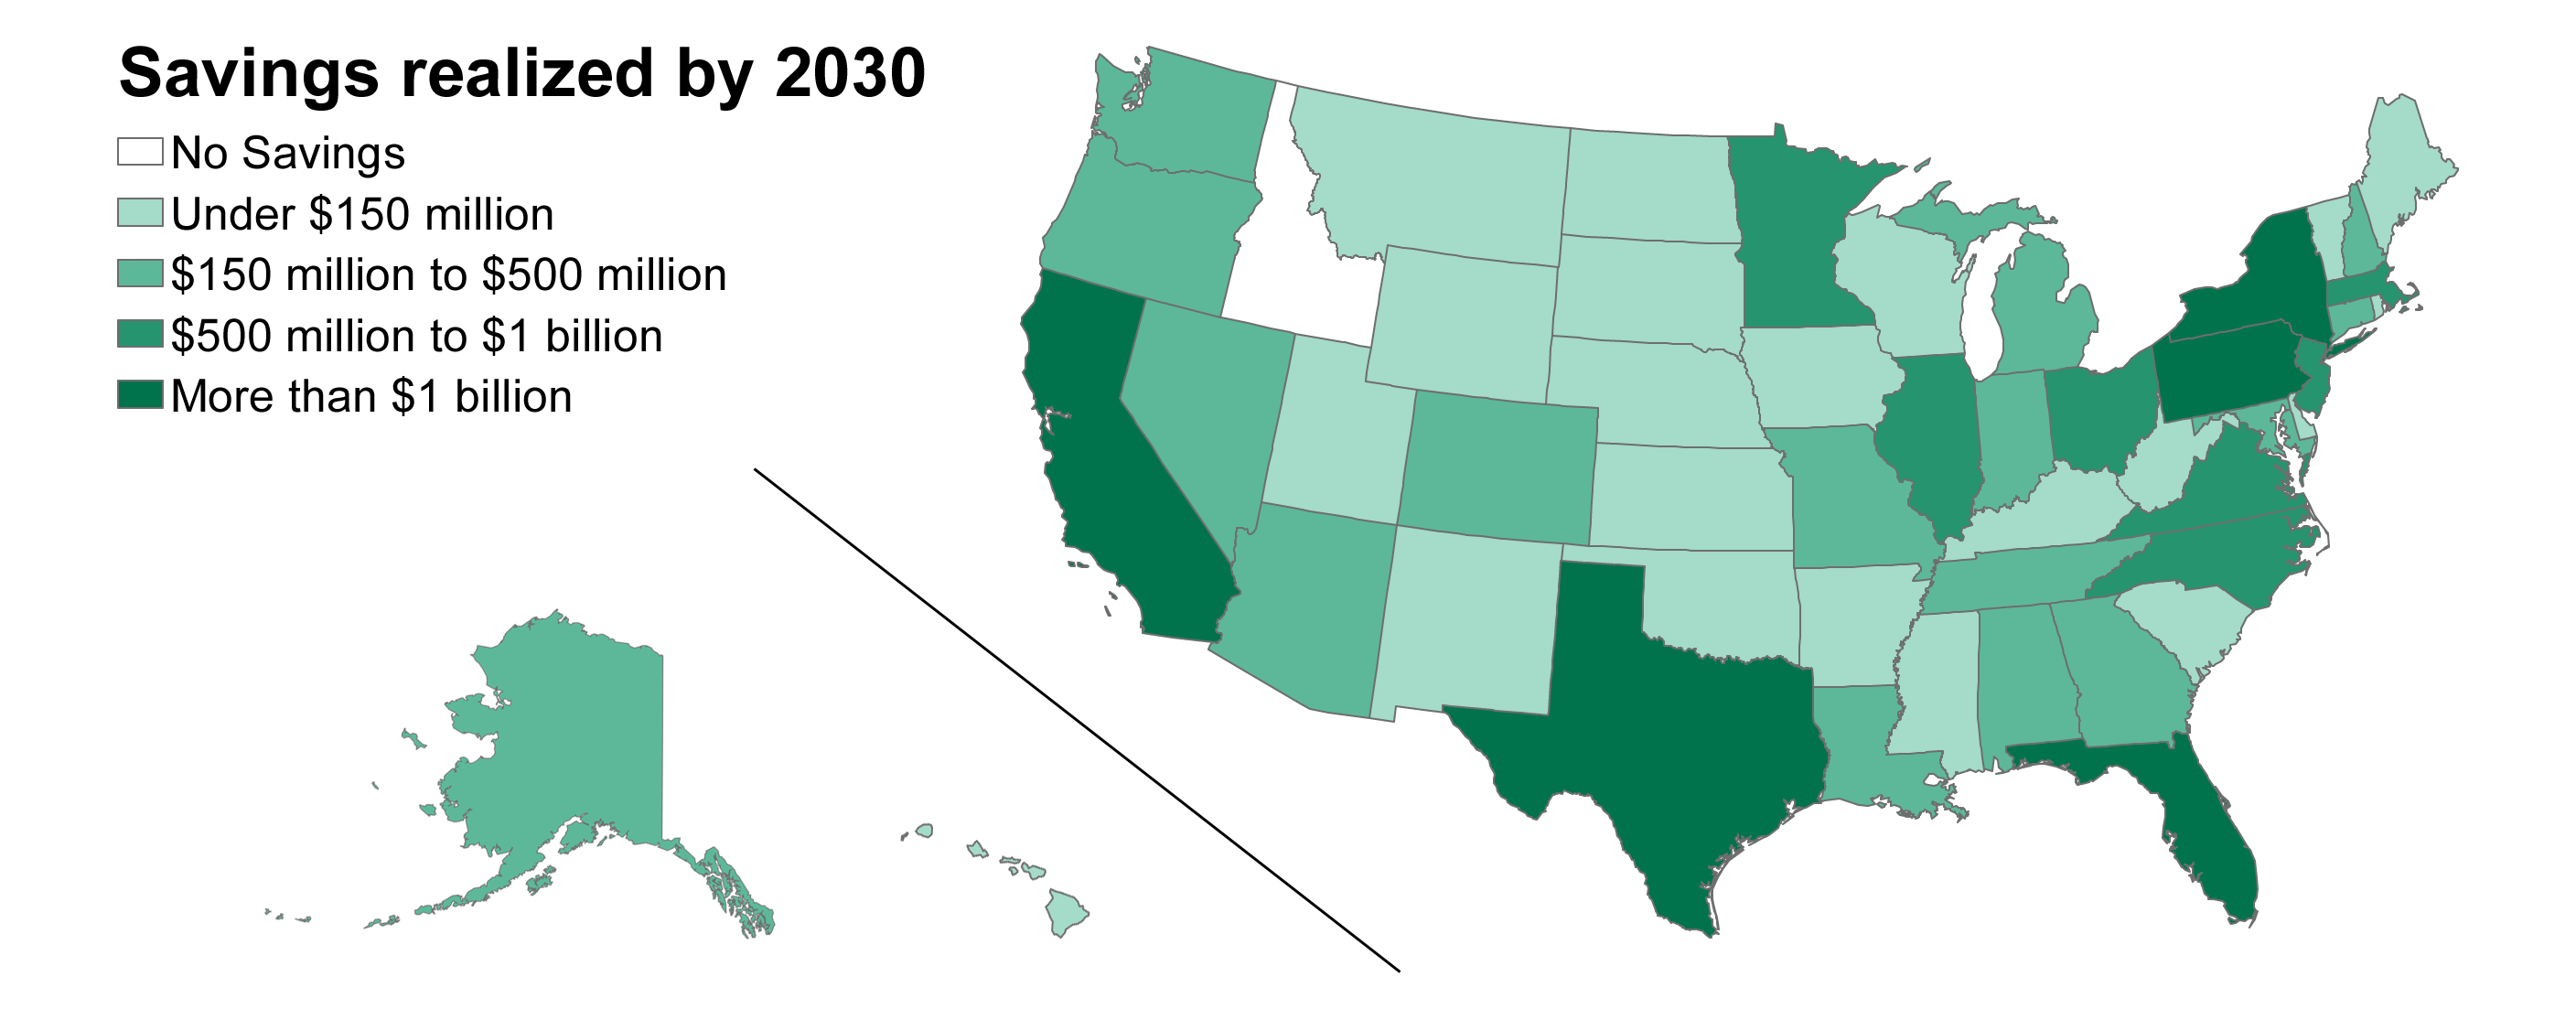 Budgetary Impact of Providing Quality Pre-K to All Children Under 200% FPL by State, By 2030